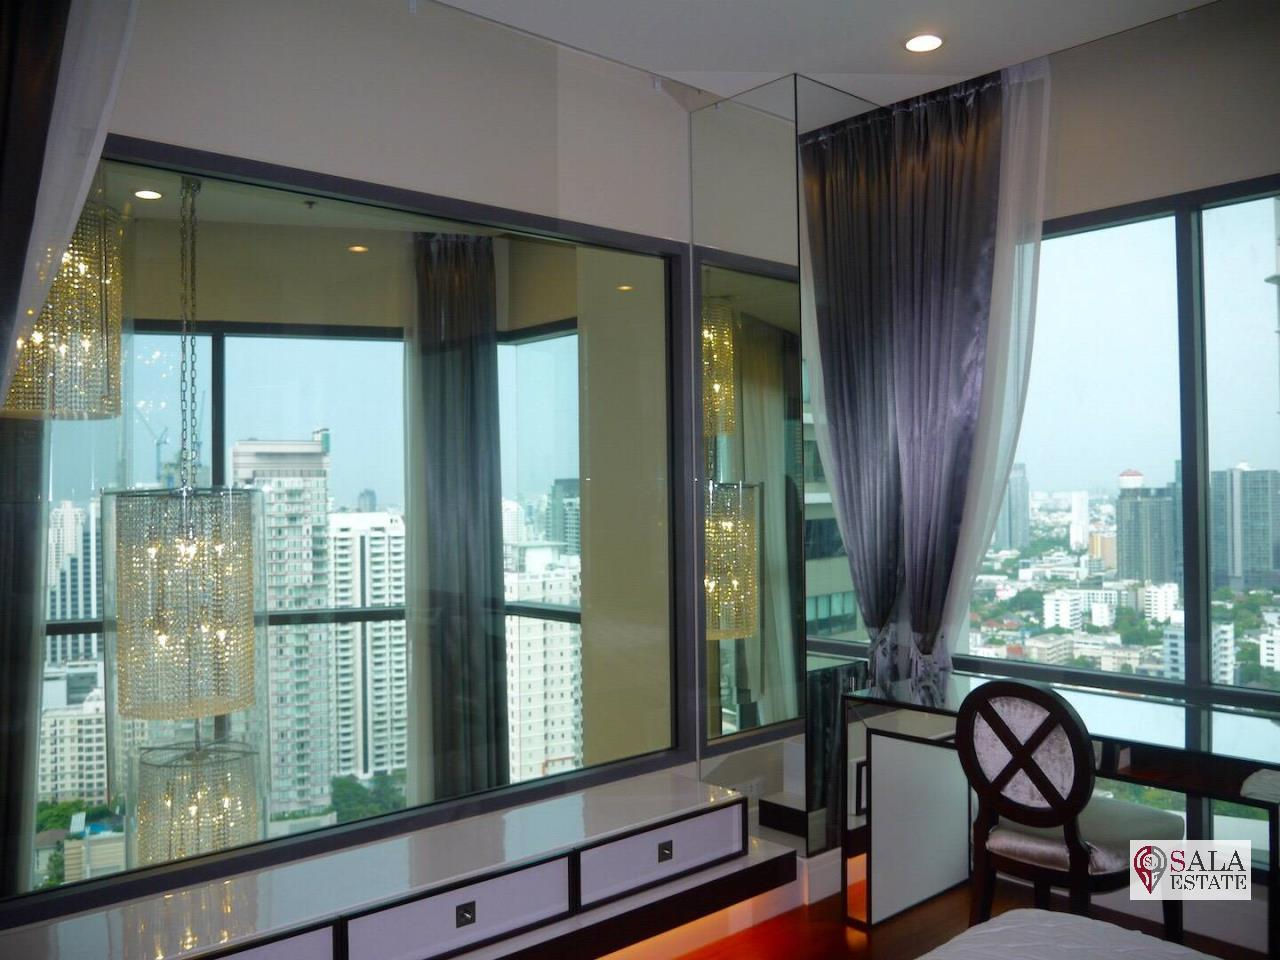 SALA ESTATE Agency's (FOR RENT) BRIGHT SUKHUMVIT 24 - BTS PHROM PHONG, DUPLEX TYPE,3 BEDROOMS 3 BATHROOMS, FULLY FURNISHED,CITY VIEW,HIGH FLOOR 11